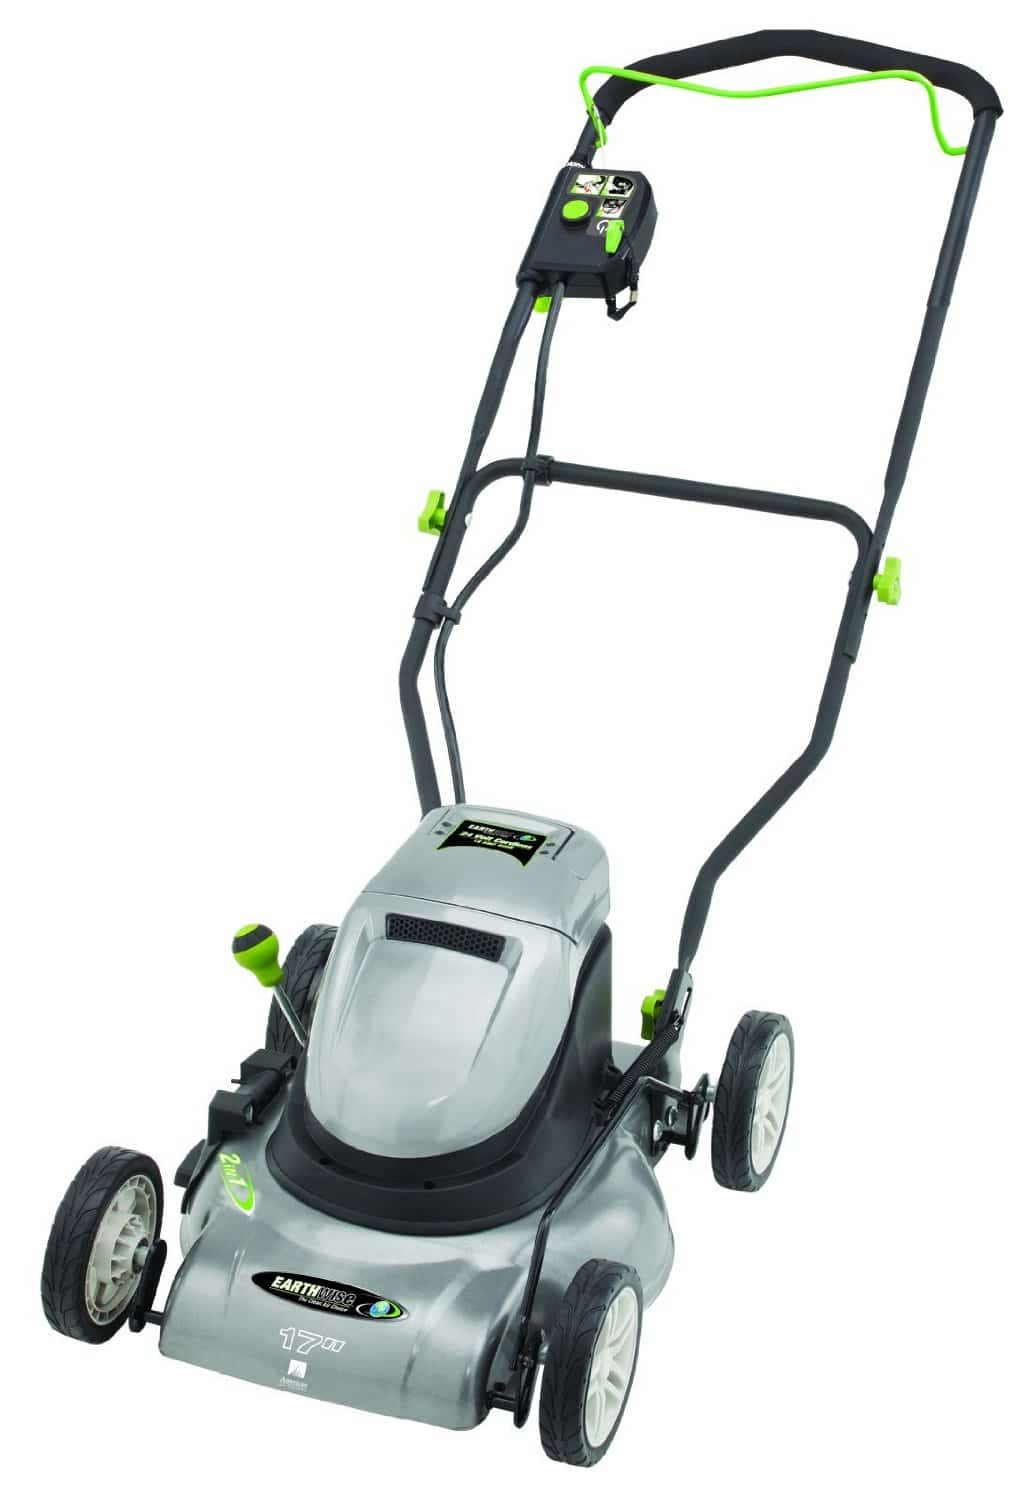 Earthwise 60617 Cordless Electric Lawn Mower Reviews